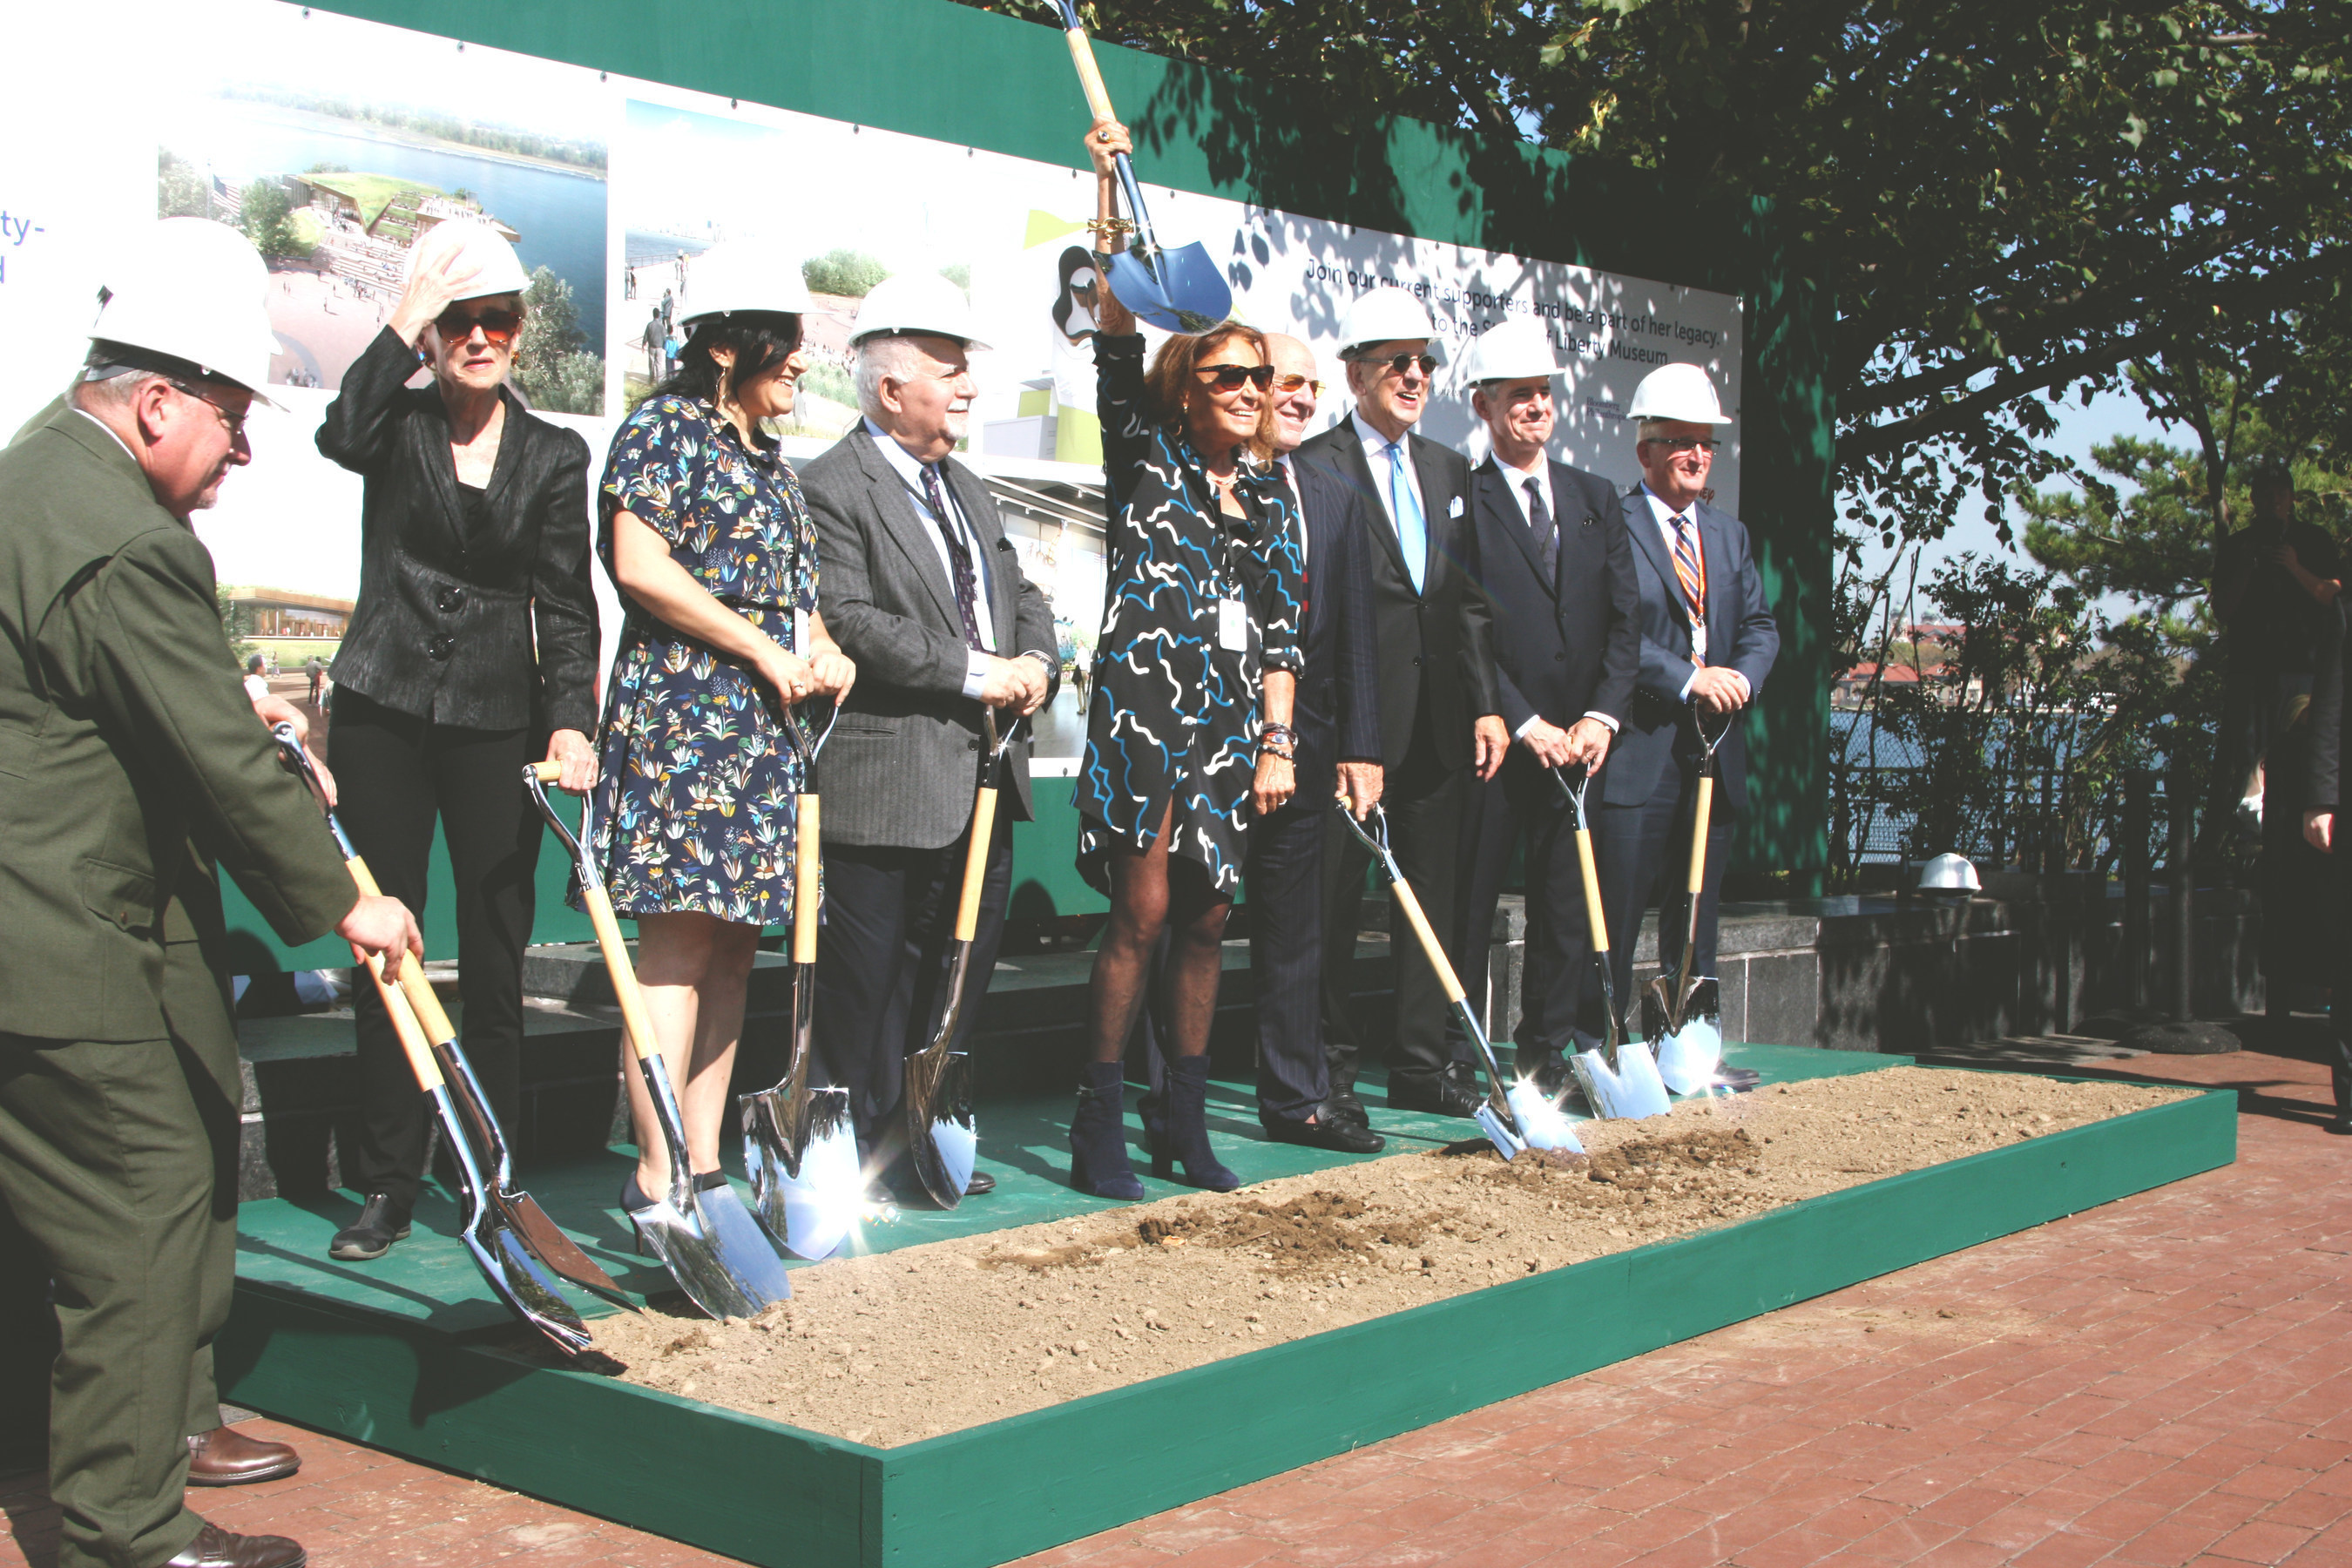 Doug Phelps, president of Phelps Construction Group, joined Diane von Furstenberg and members of the Statue of Liberty-Ellis Island Foundation, Inc. in a groundbreaking ceremony on Thursday, October 6 for the new 26,000 square foot Statue of Liberty Museum on Liberty Island in the New York Harbor.